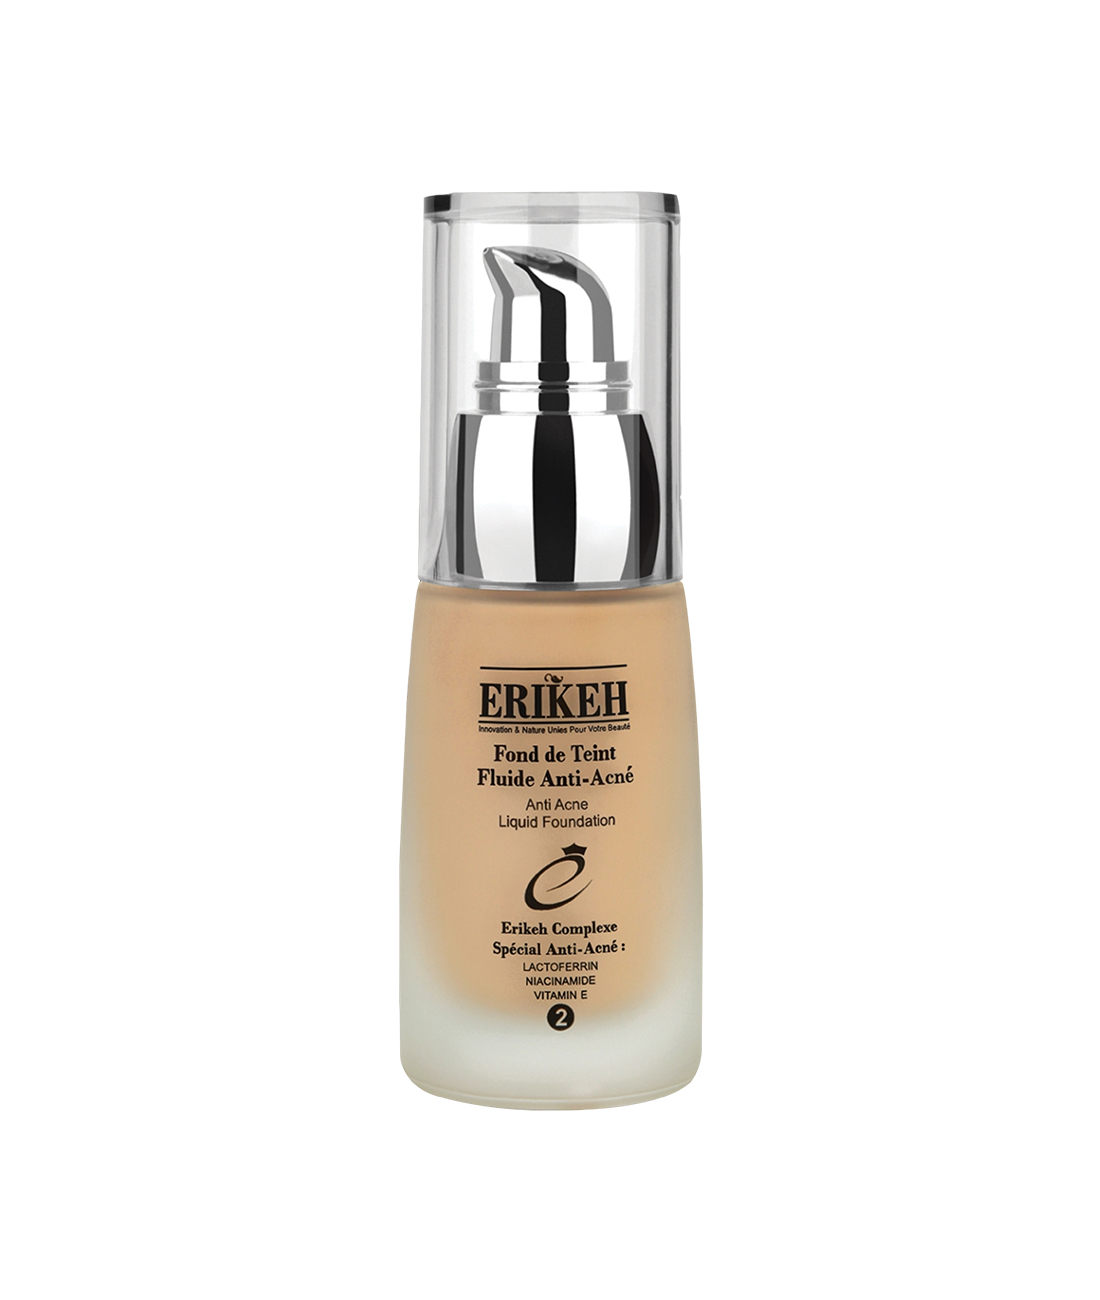 Anti-Acne Liquid Foundation2